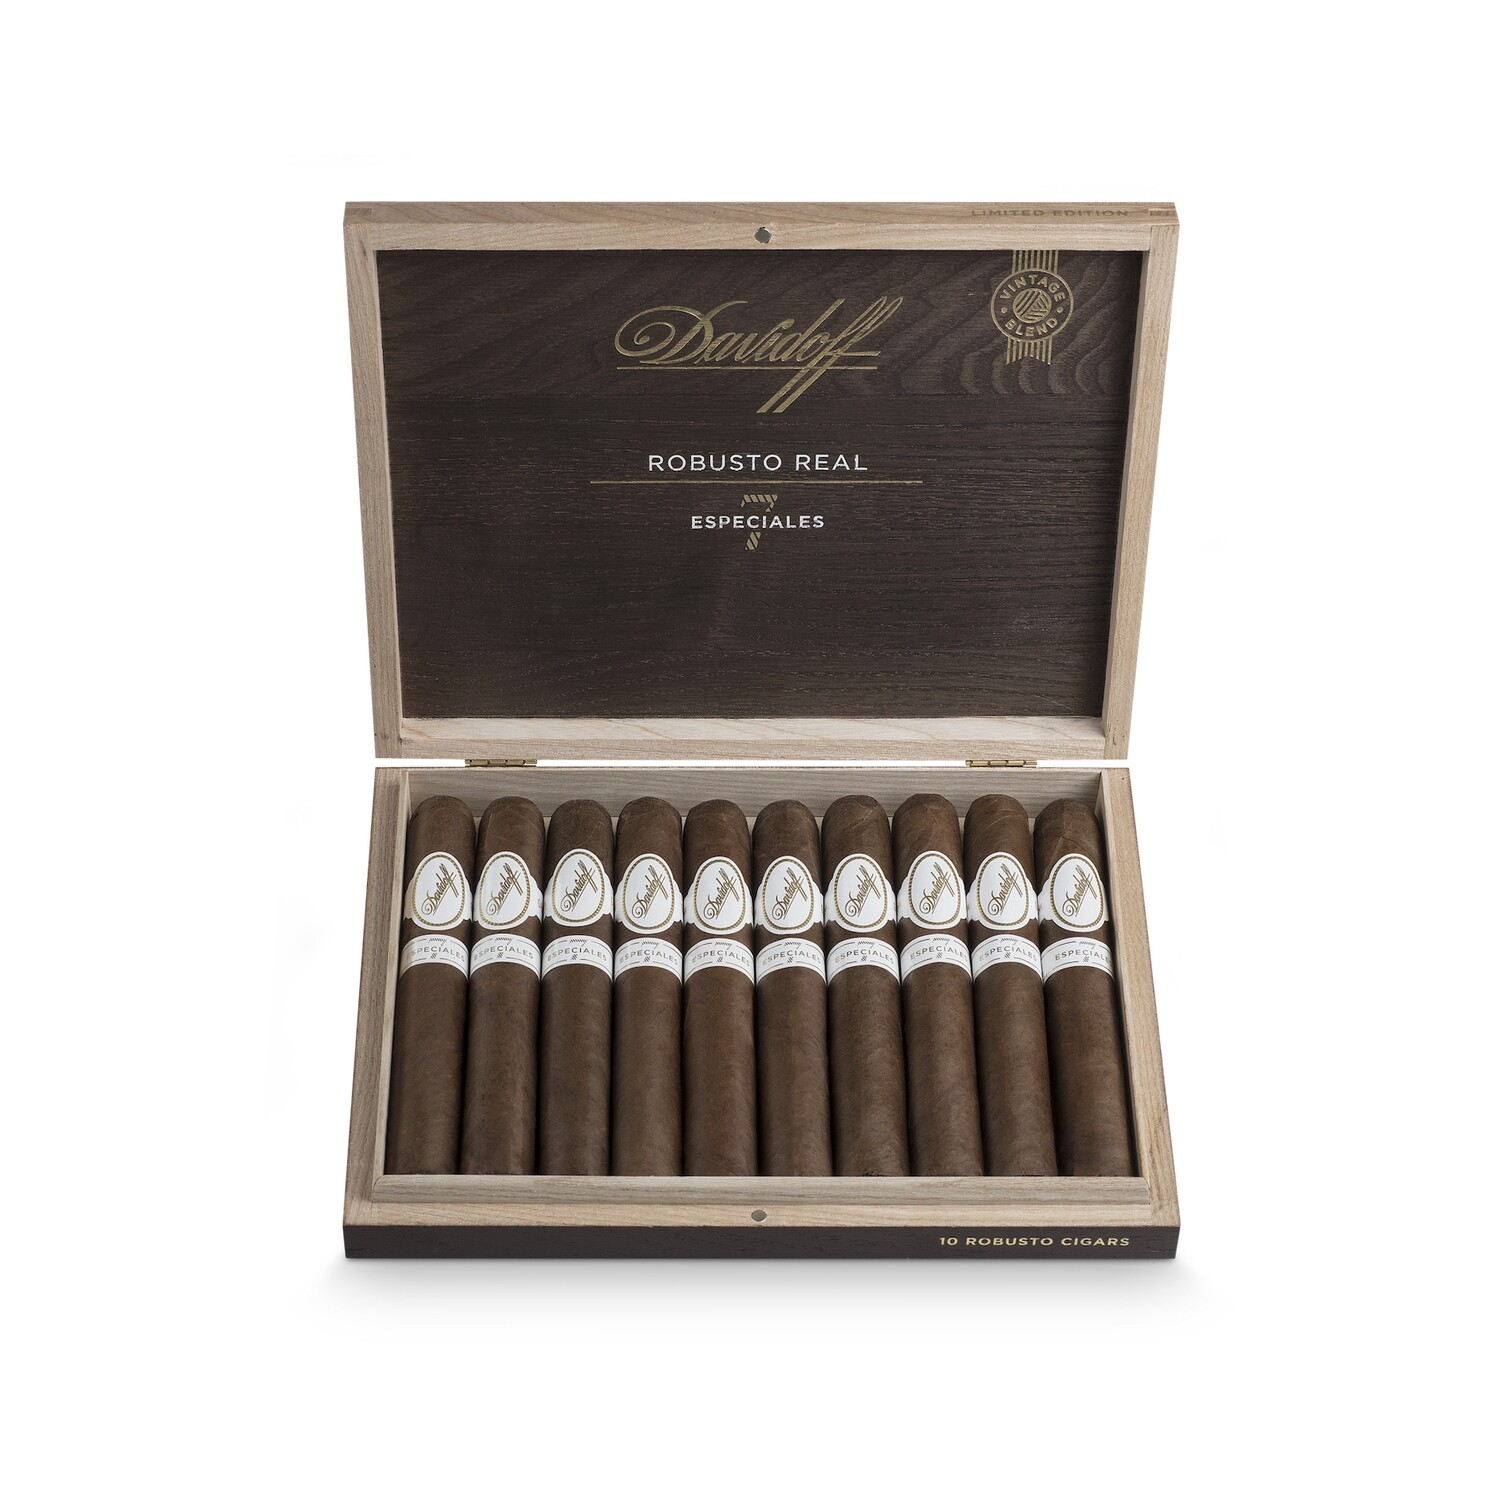 Davidoff Robusto Real Especial Limited Edition 2019